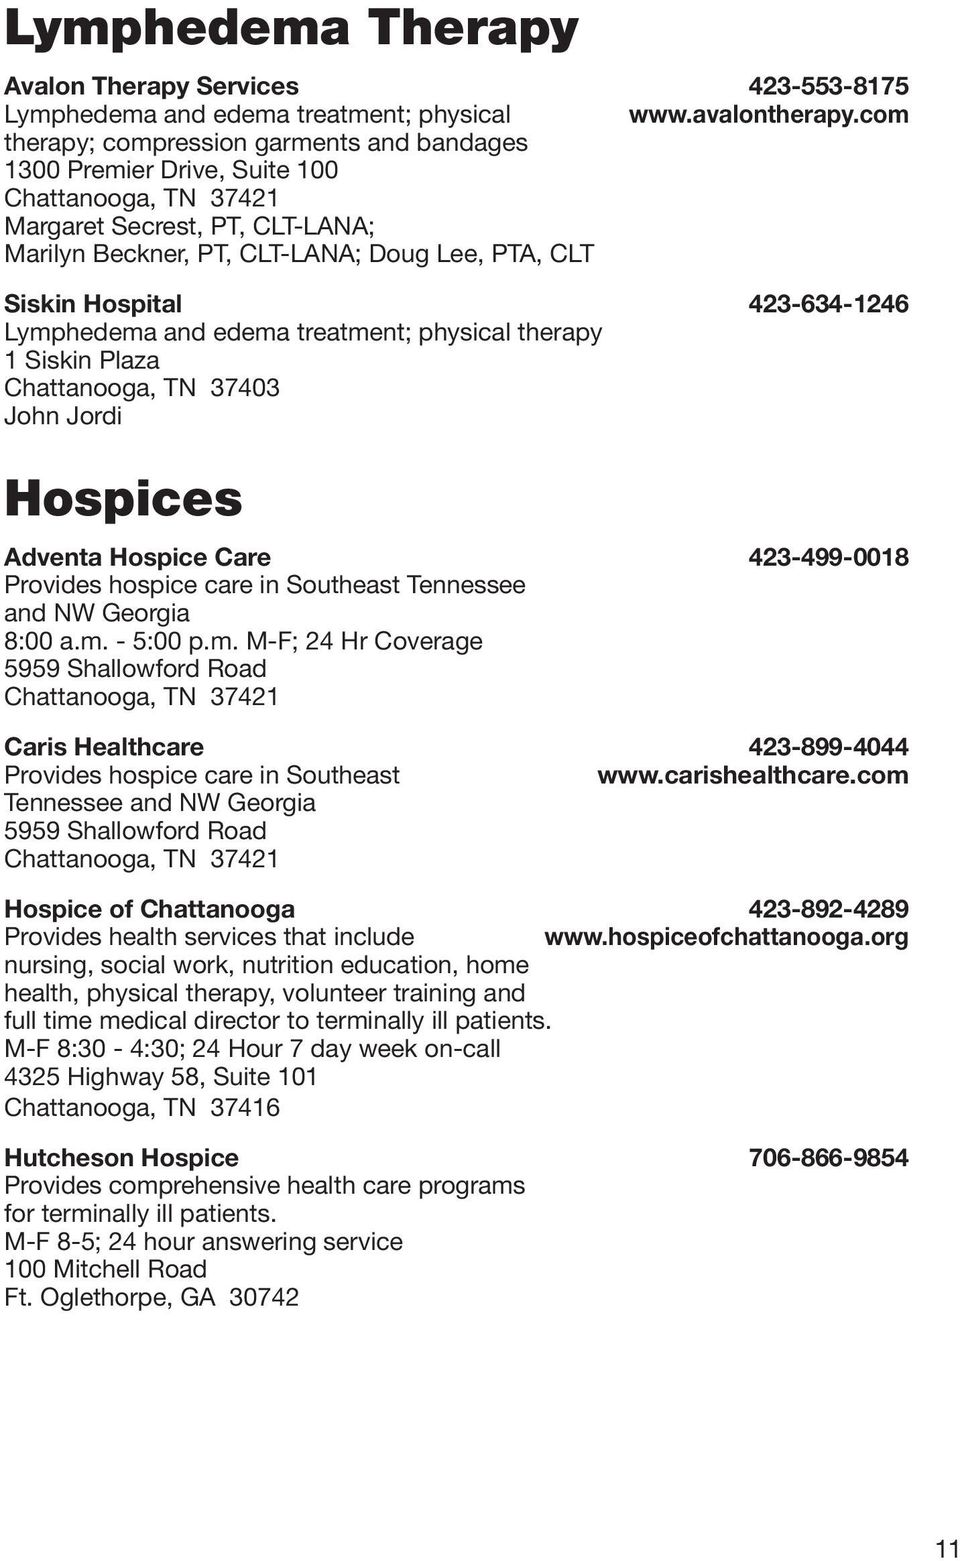 423-634-1246 Lymphedema and edema treatment; physical therapy 1 Siskin Plaza John Jordi Hospices Adventa Hospice Care 423-499-0018 Provides hospice care in Southeast Tennessee and NW Georgia 8:00 a.m. - 5:00 p.